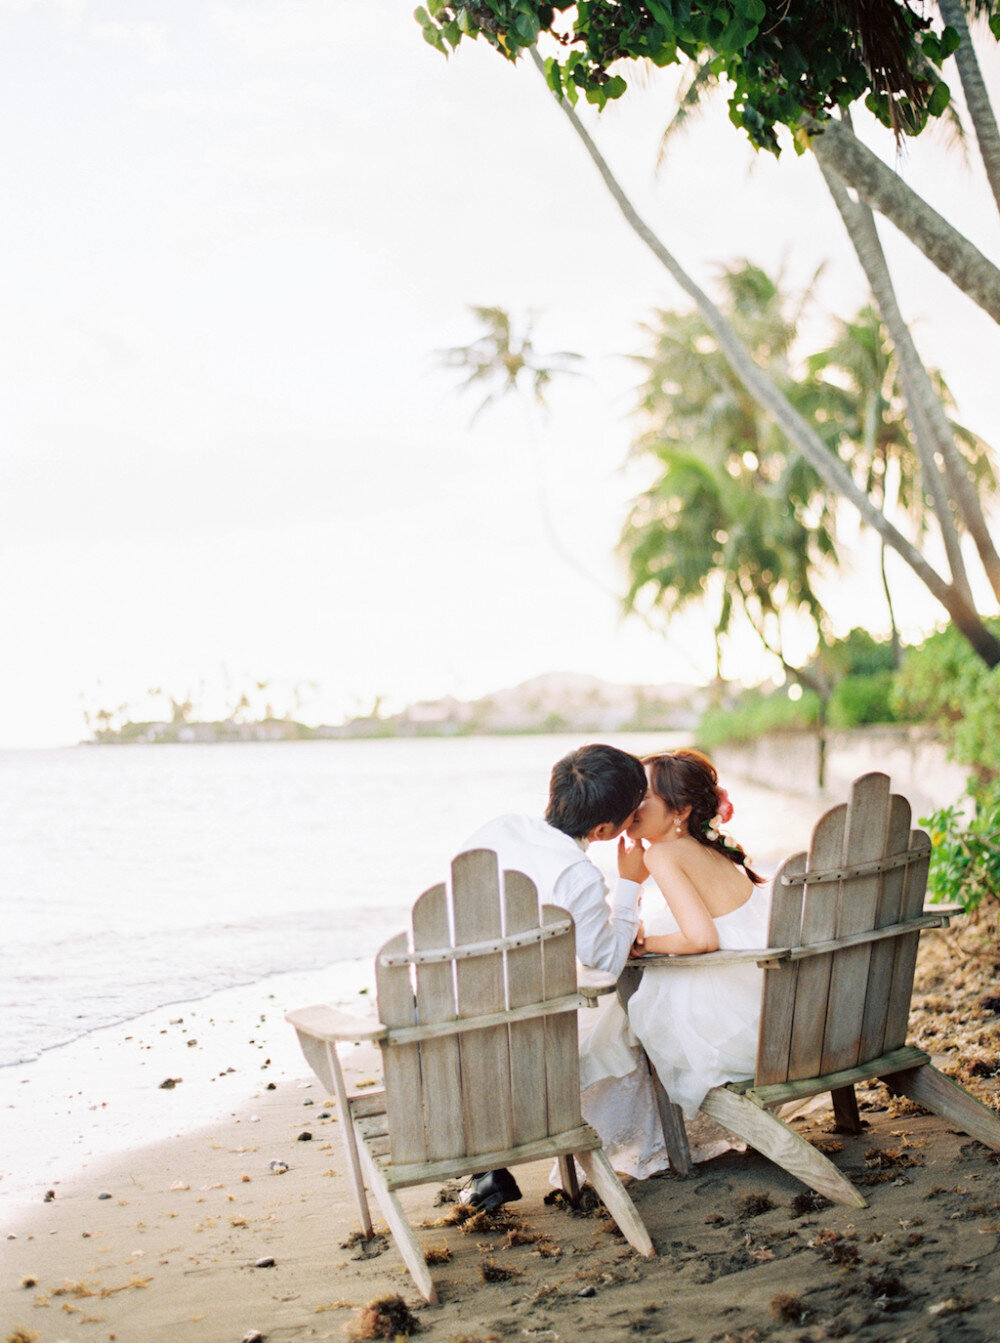 Finishing Touch Hawaii Wedding Planning Design Planner Designer Corporate Social Non Profit Sandra Williams27